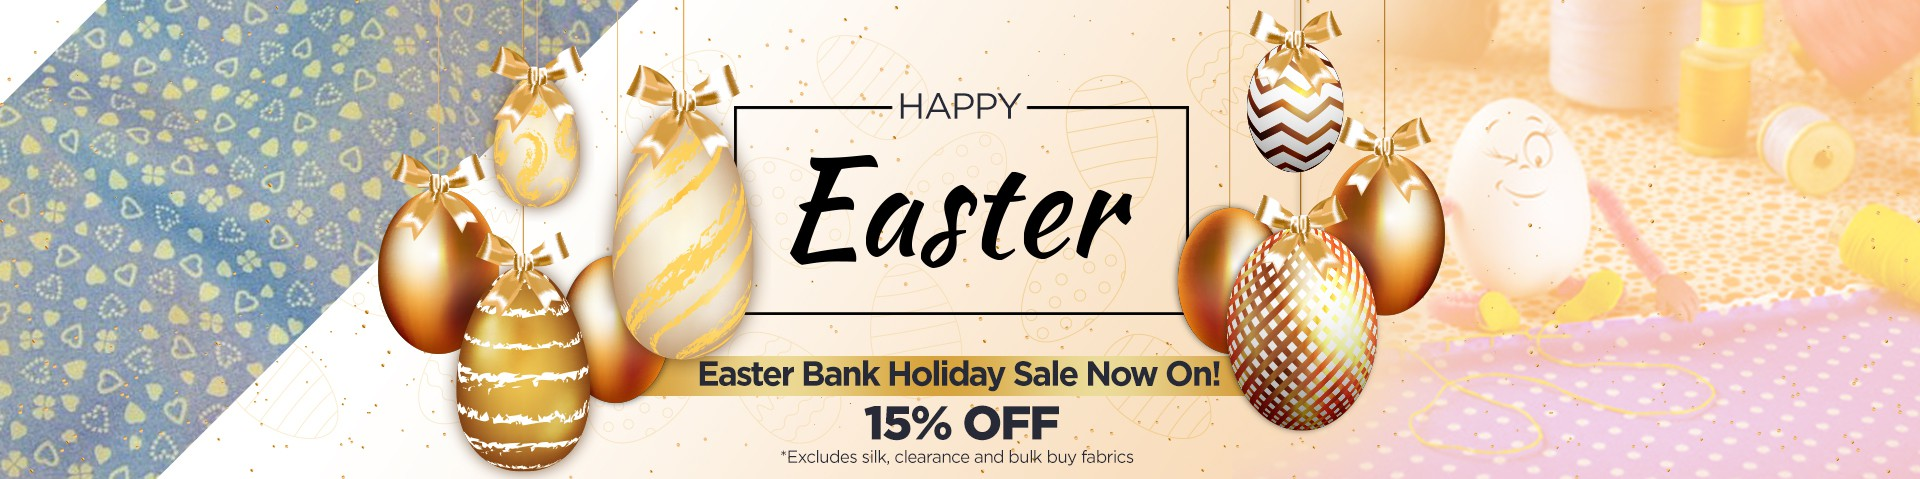 easter banner for a sale promotion